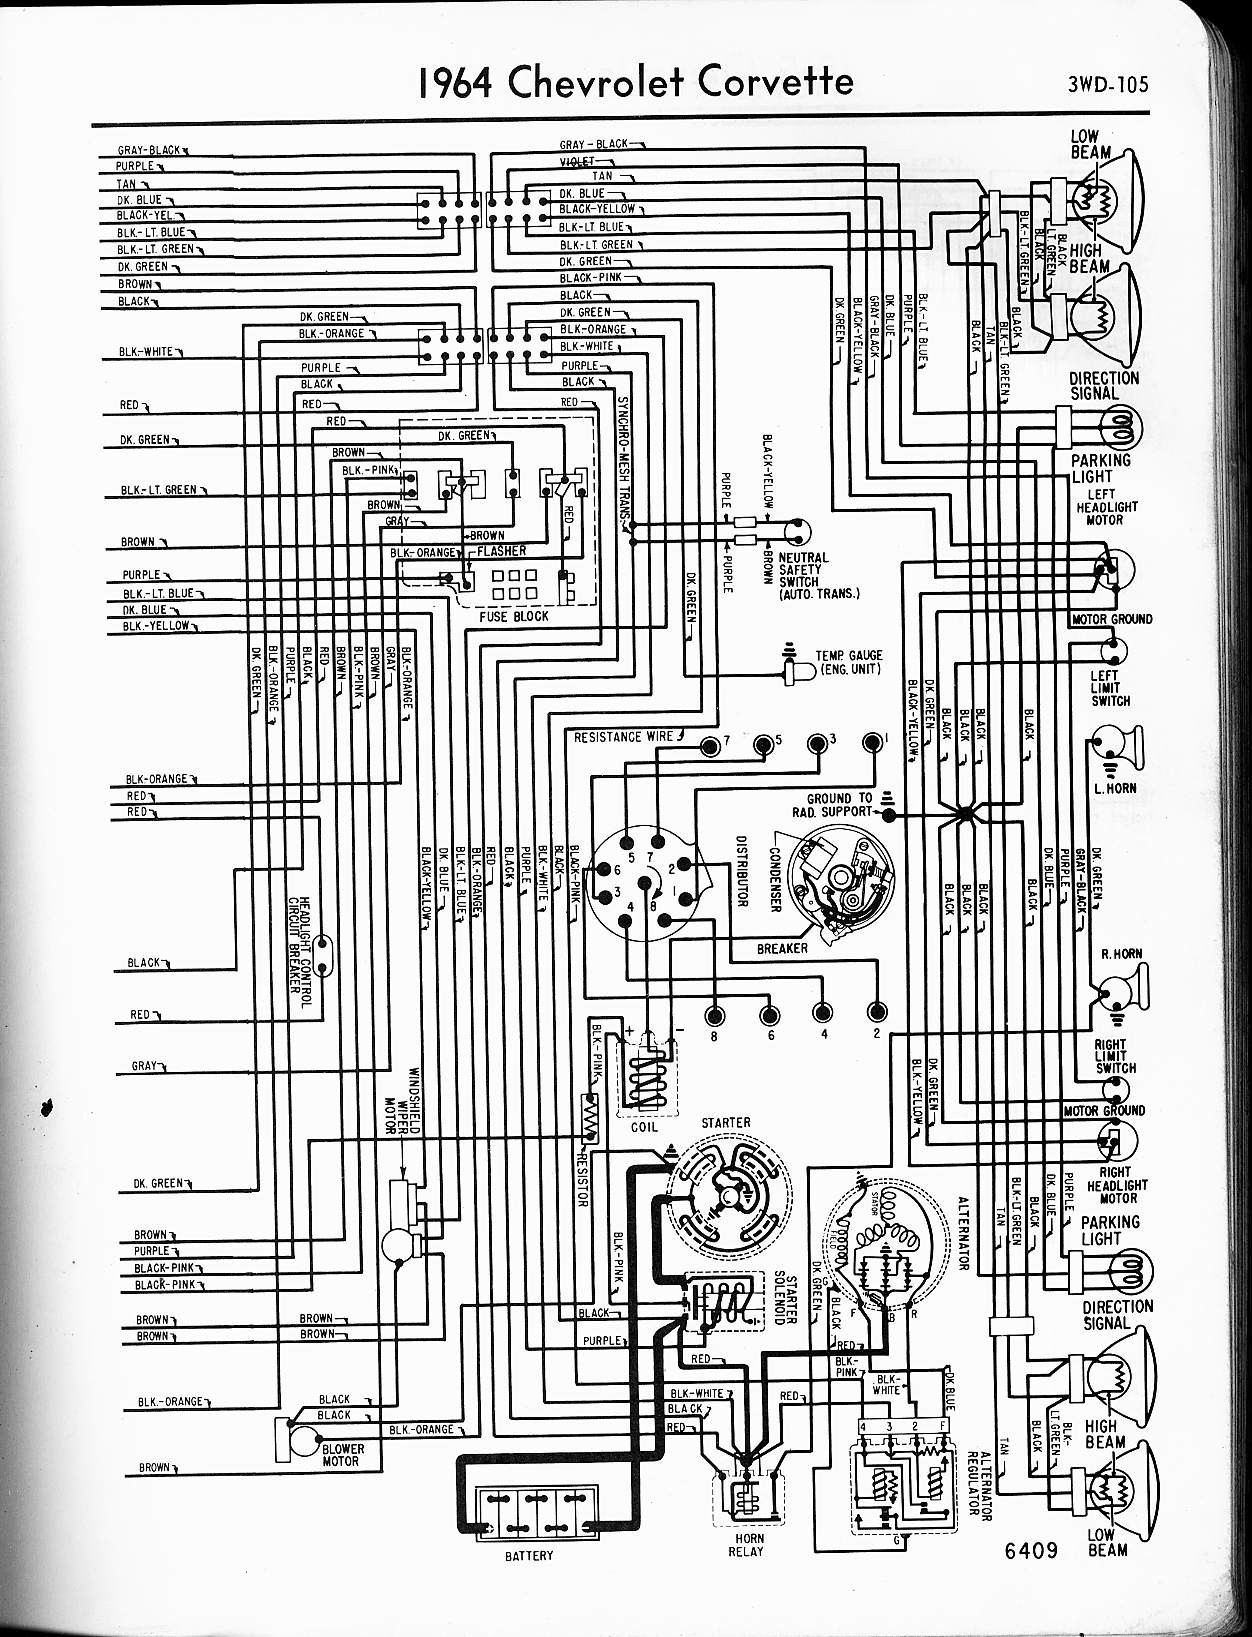 1981 Chevy Truck Starter Wiring Schematics Diagram Will Be Yamaha Ysr50 81 Corvette Best Site Harness 2003 Chevrolet Electrical Schematic Silverado